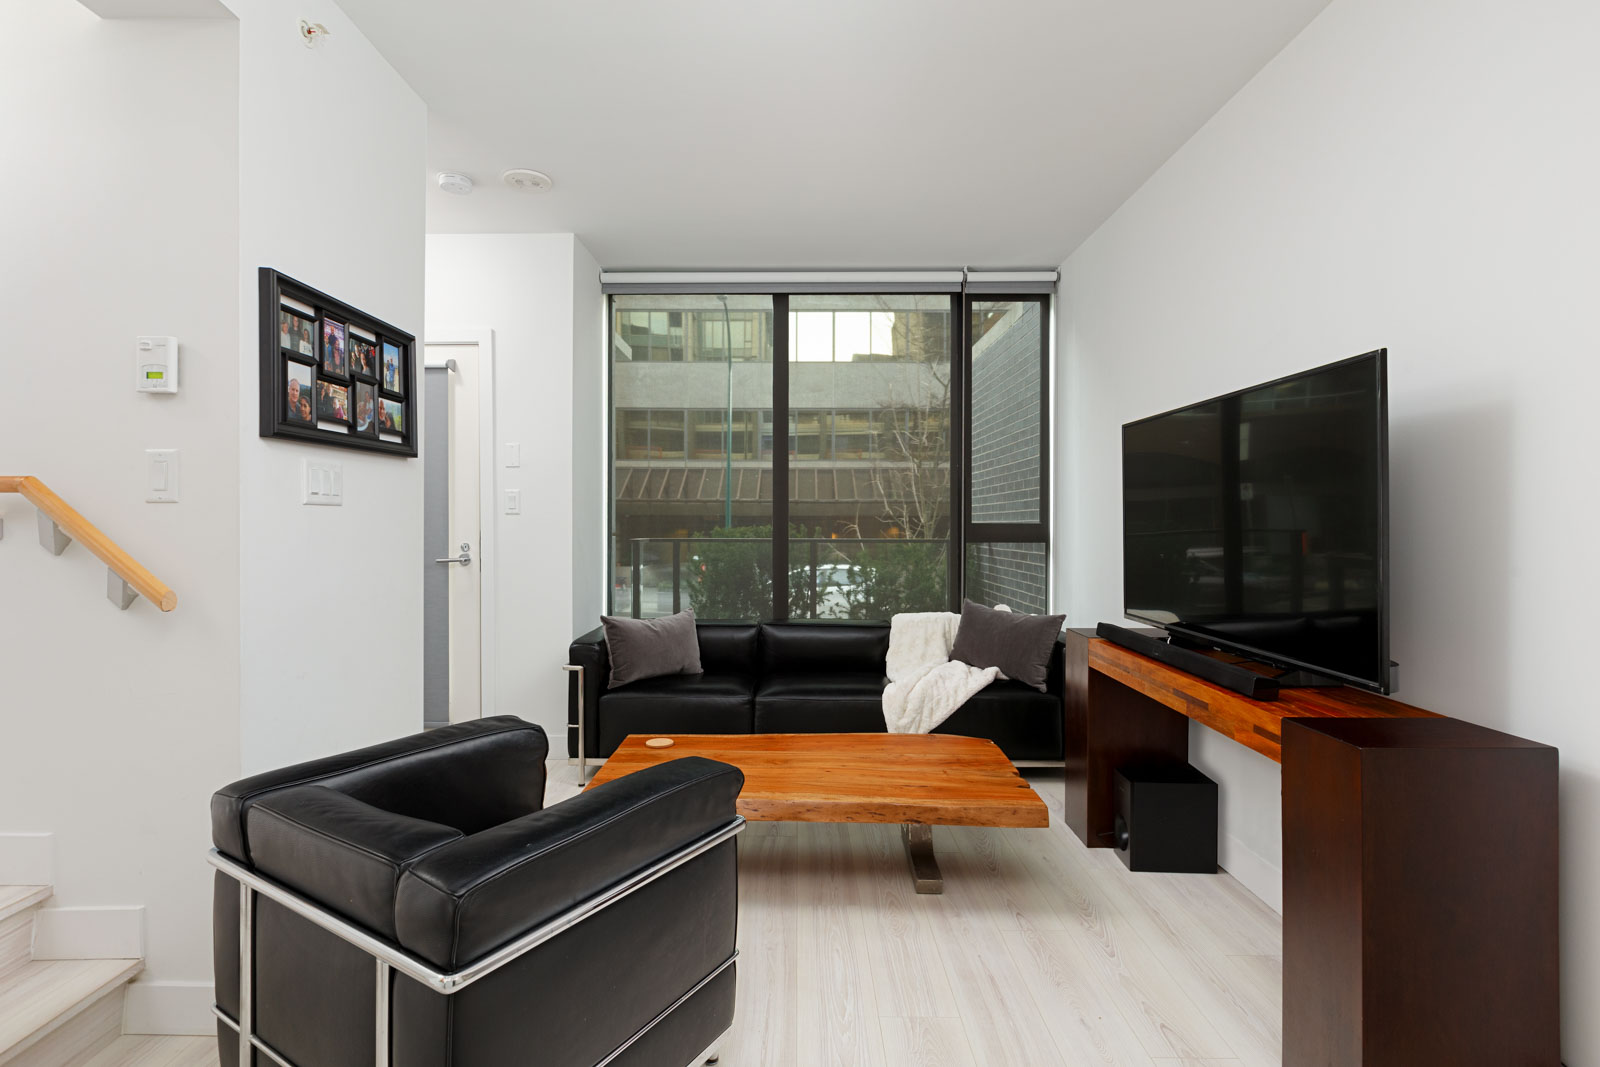 Living area with black leather seating and view at Downtown Vancouver condo rental.